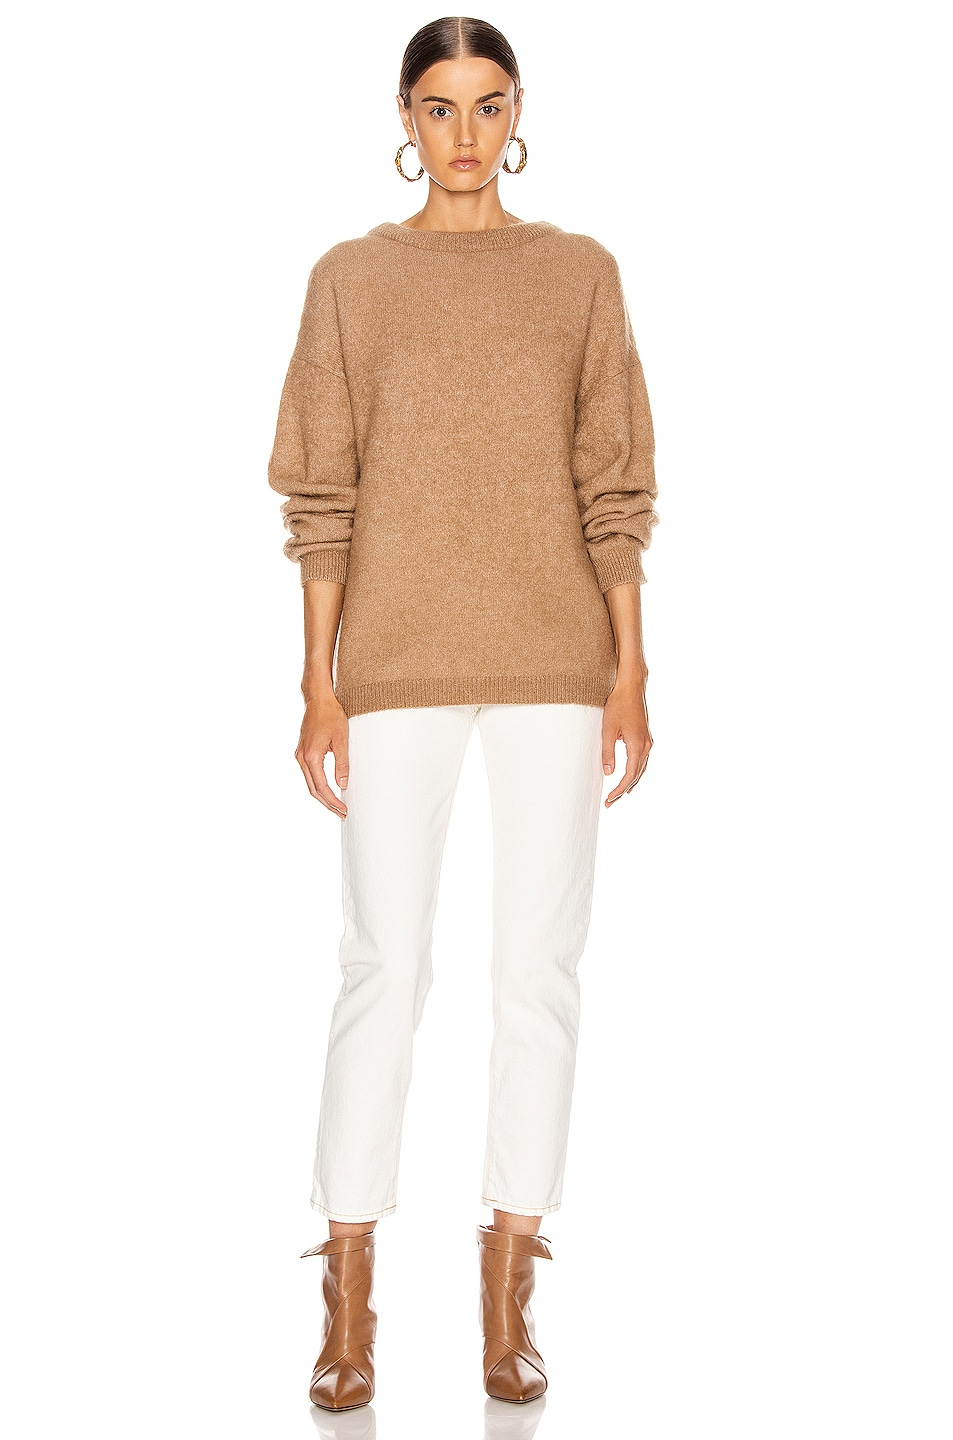 Image 4 of Acne Studios Dramatic Mohair Sweater in Caramel Brown